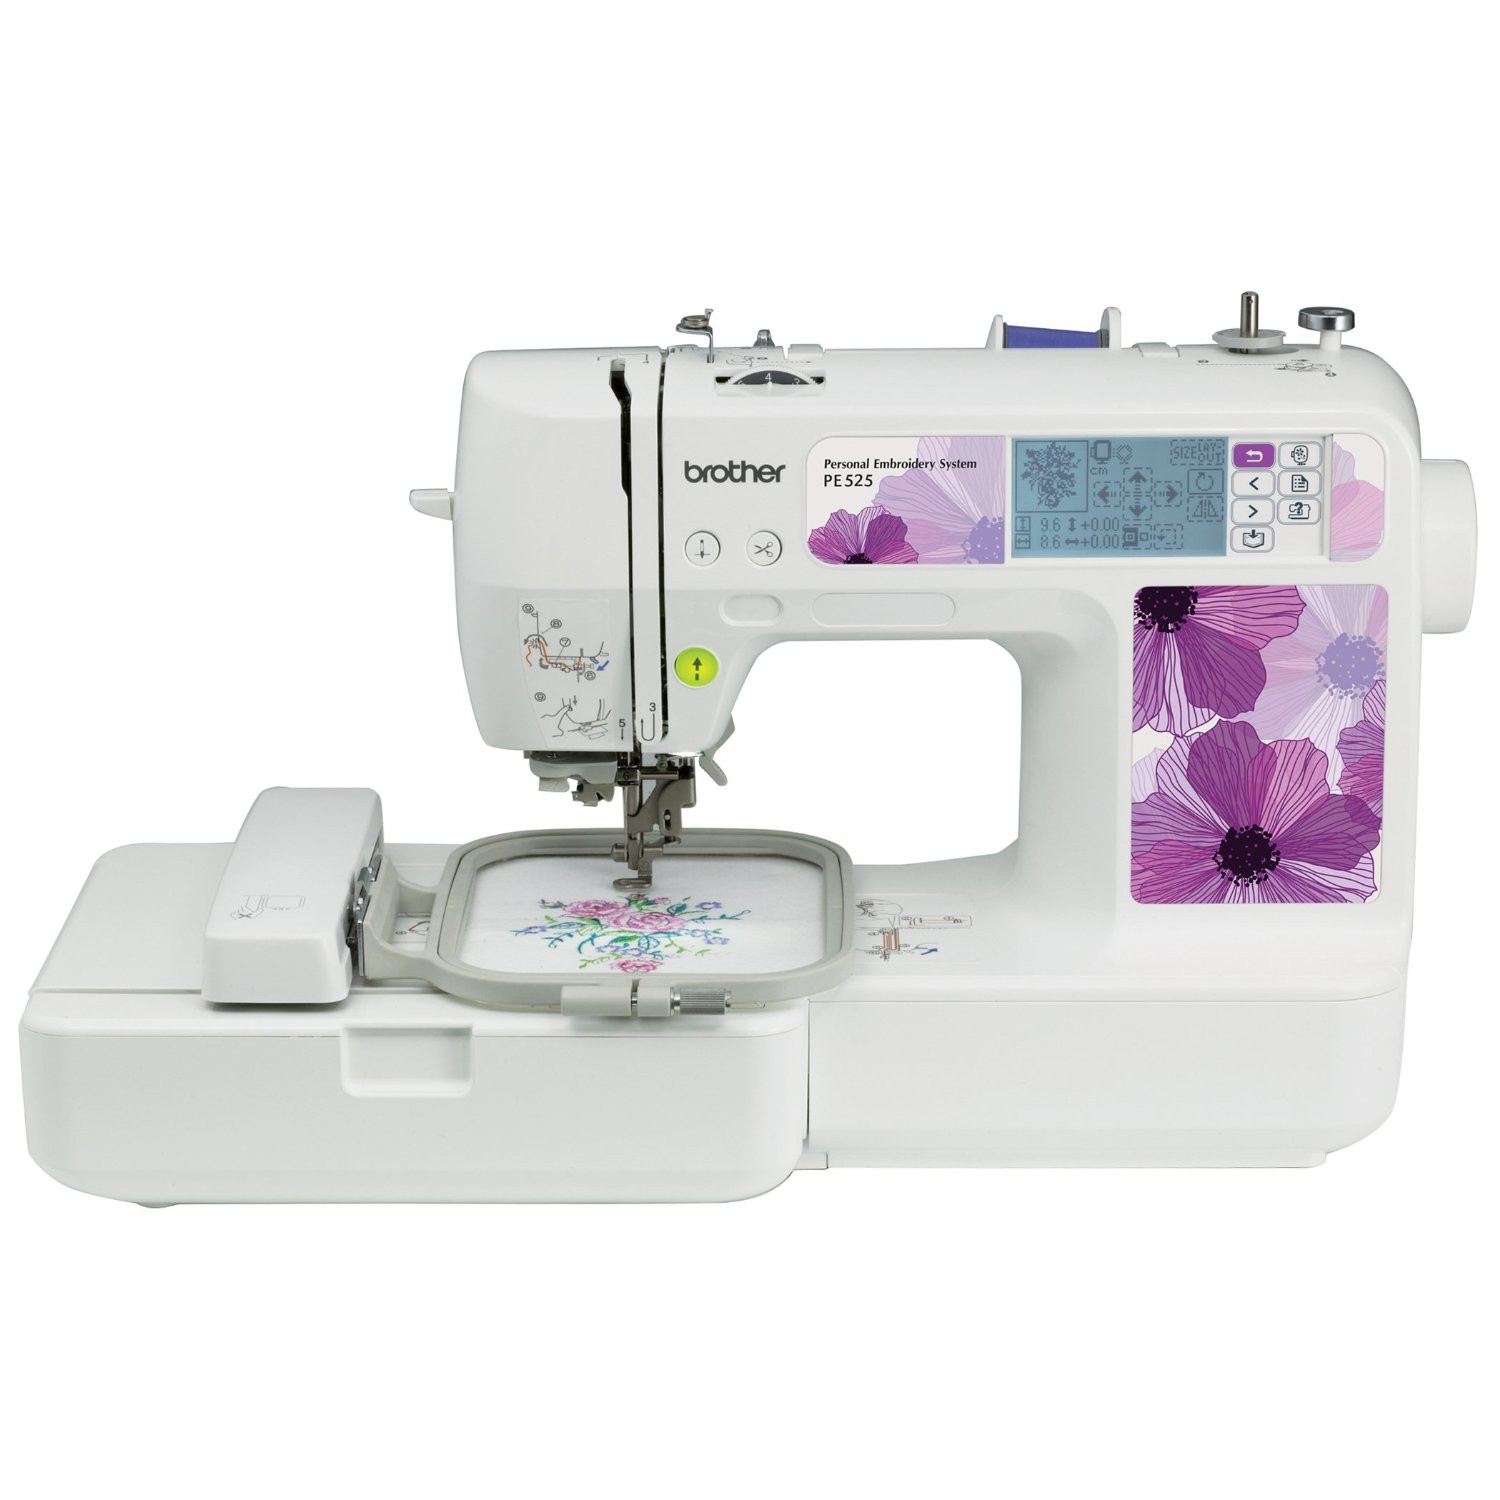 Review of Brother PE525 Embroidery sewing Machine